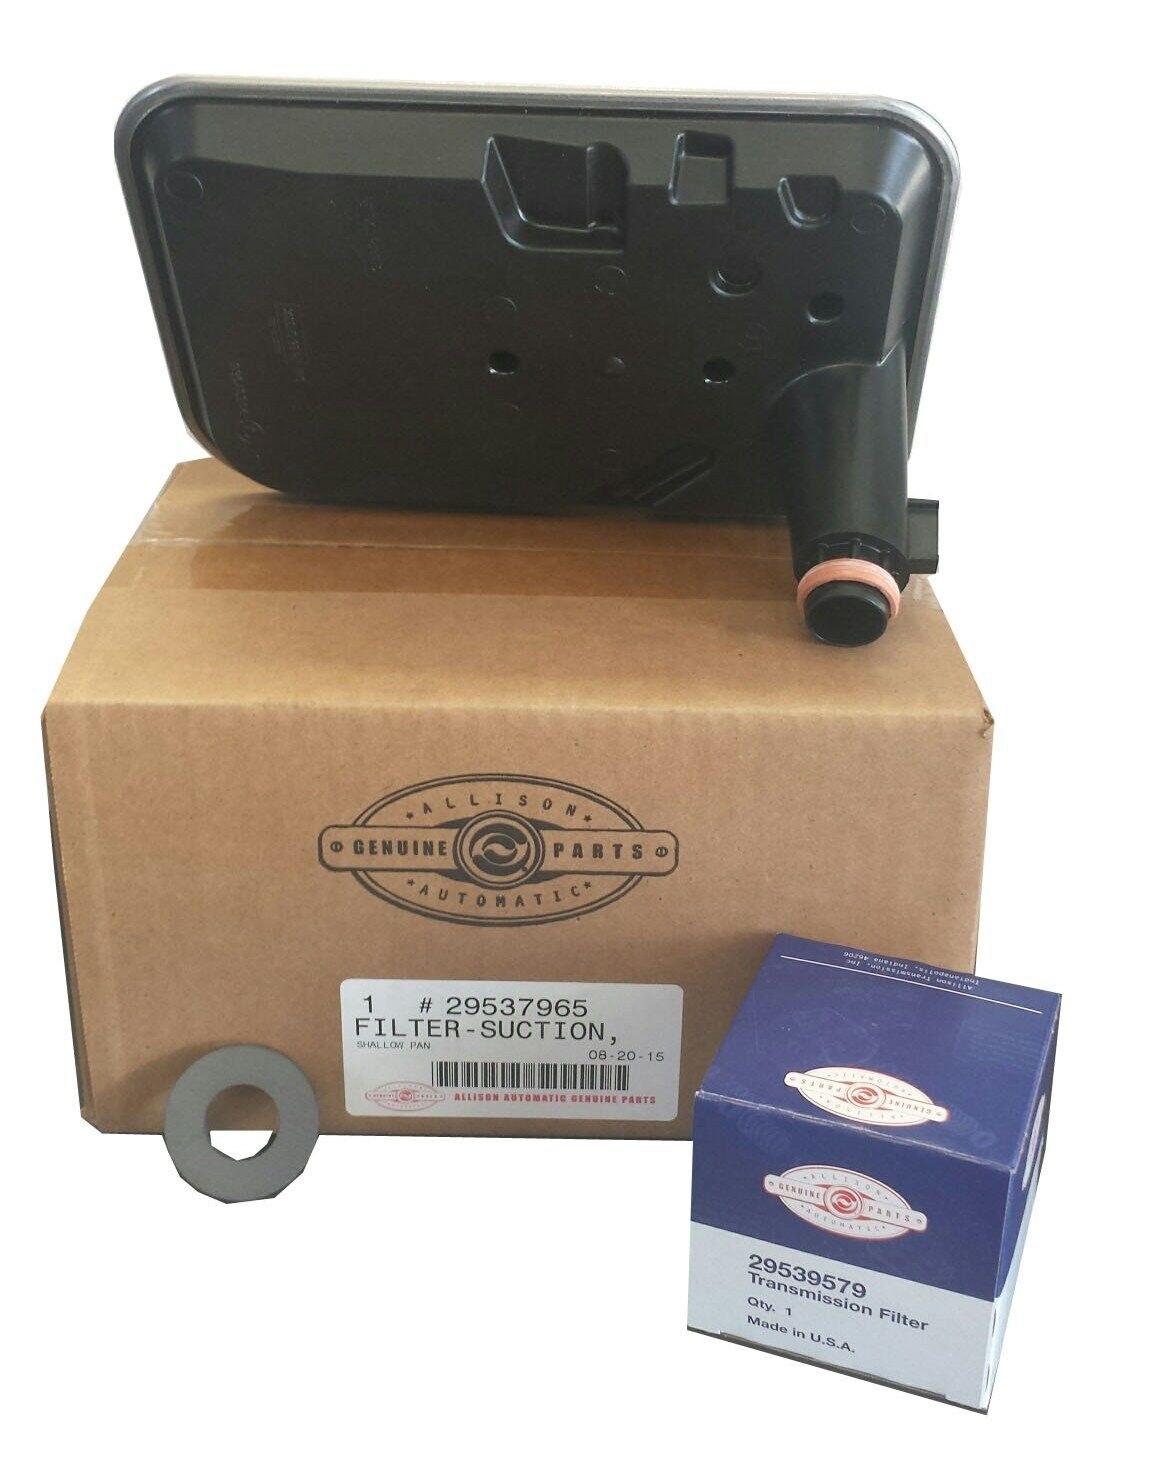 Genuine Allison Filter Kit 29539579 AND External Spin On Filter Internal Shallow Filter 29537965